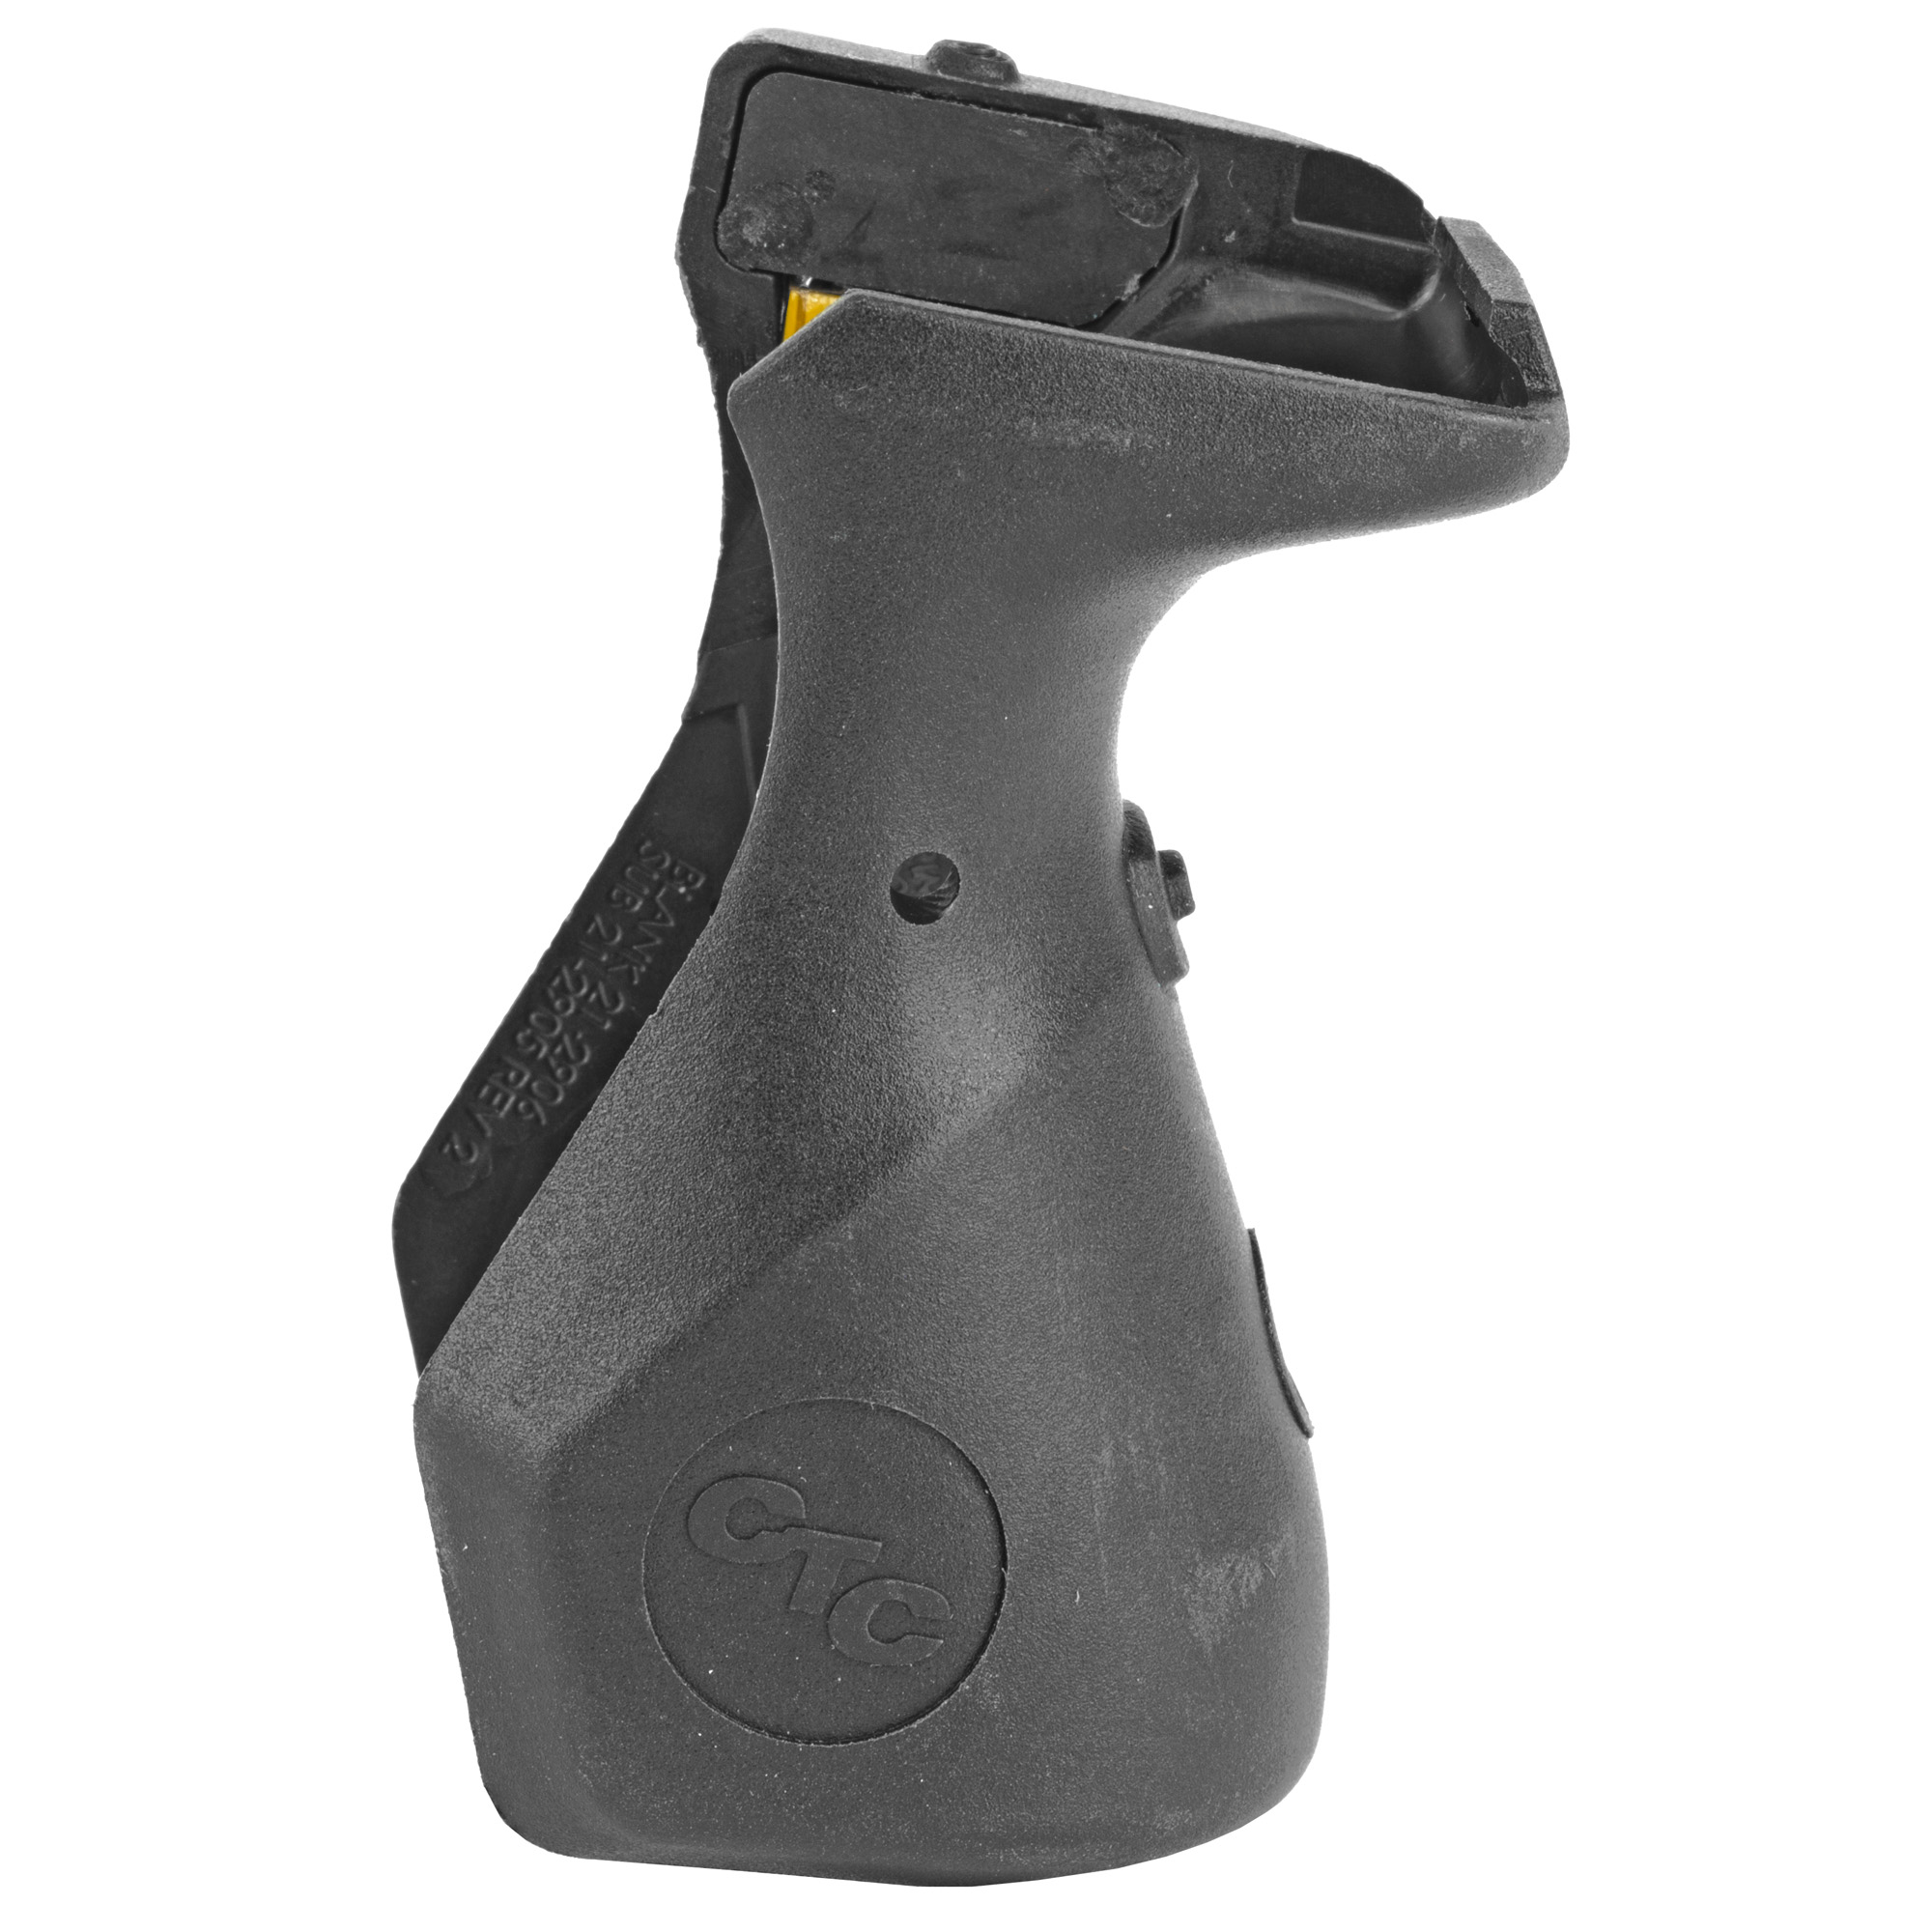 """Specifically designed for the unique contours of 4th Gen GLOCK Subcompact pistols"""" the rear activation LG-852 offers a repeatable sighting advantage for your pistol. These Lasergrips provide the versatility of instant activation from a rear switch."""